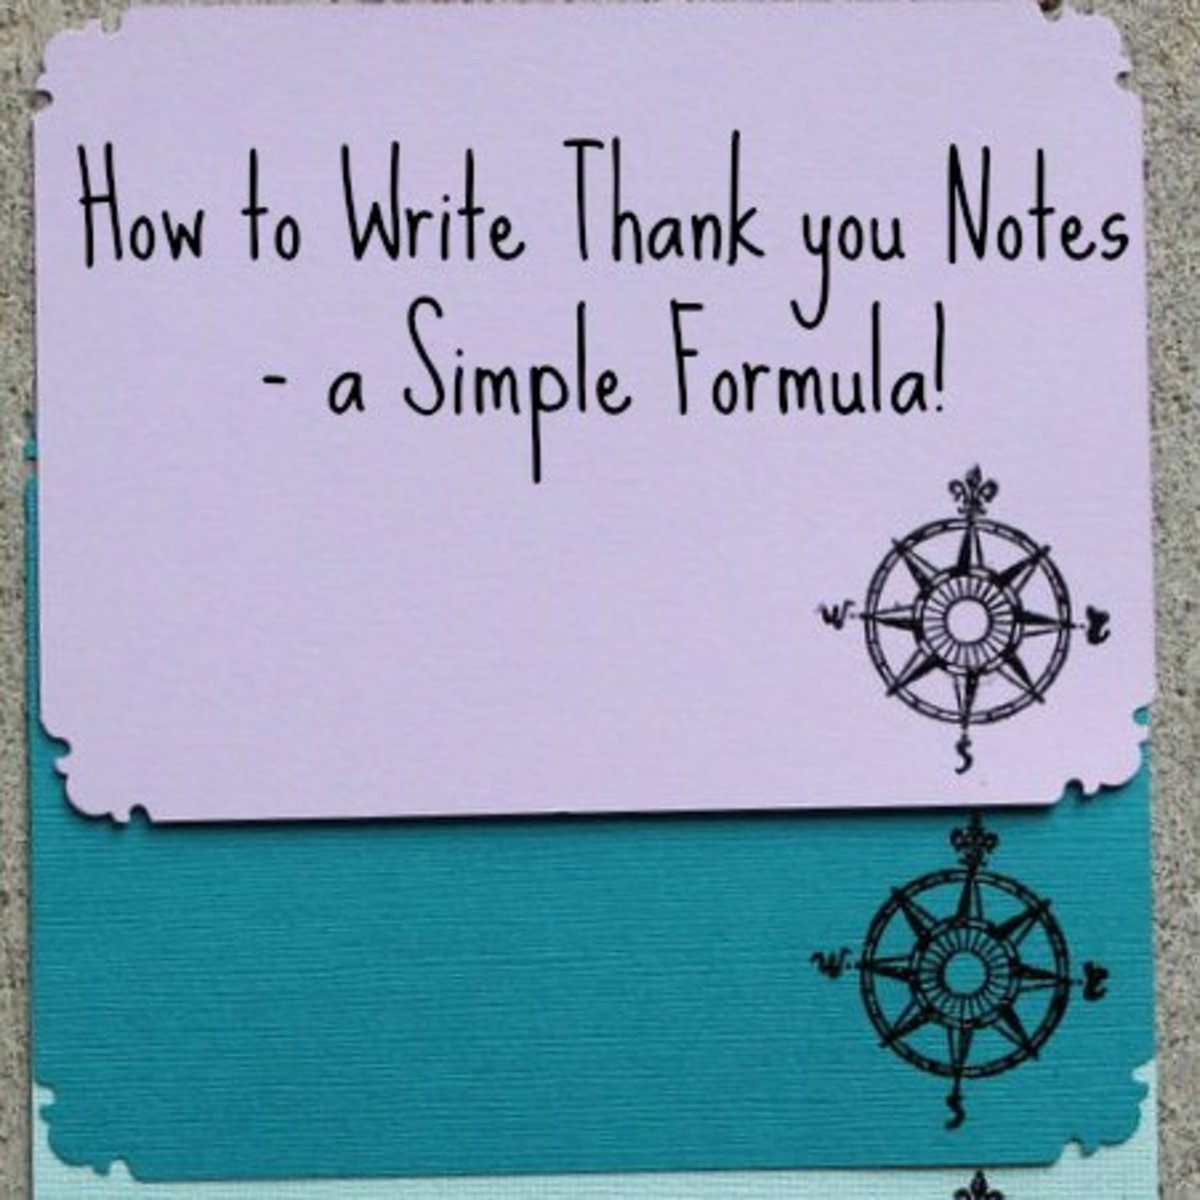 How to write note card